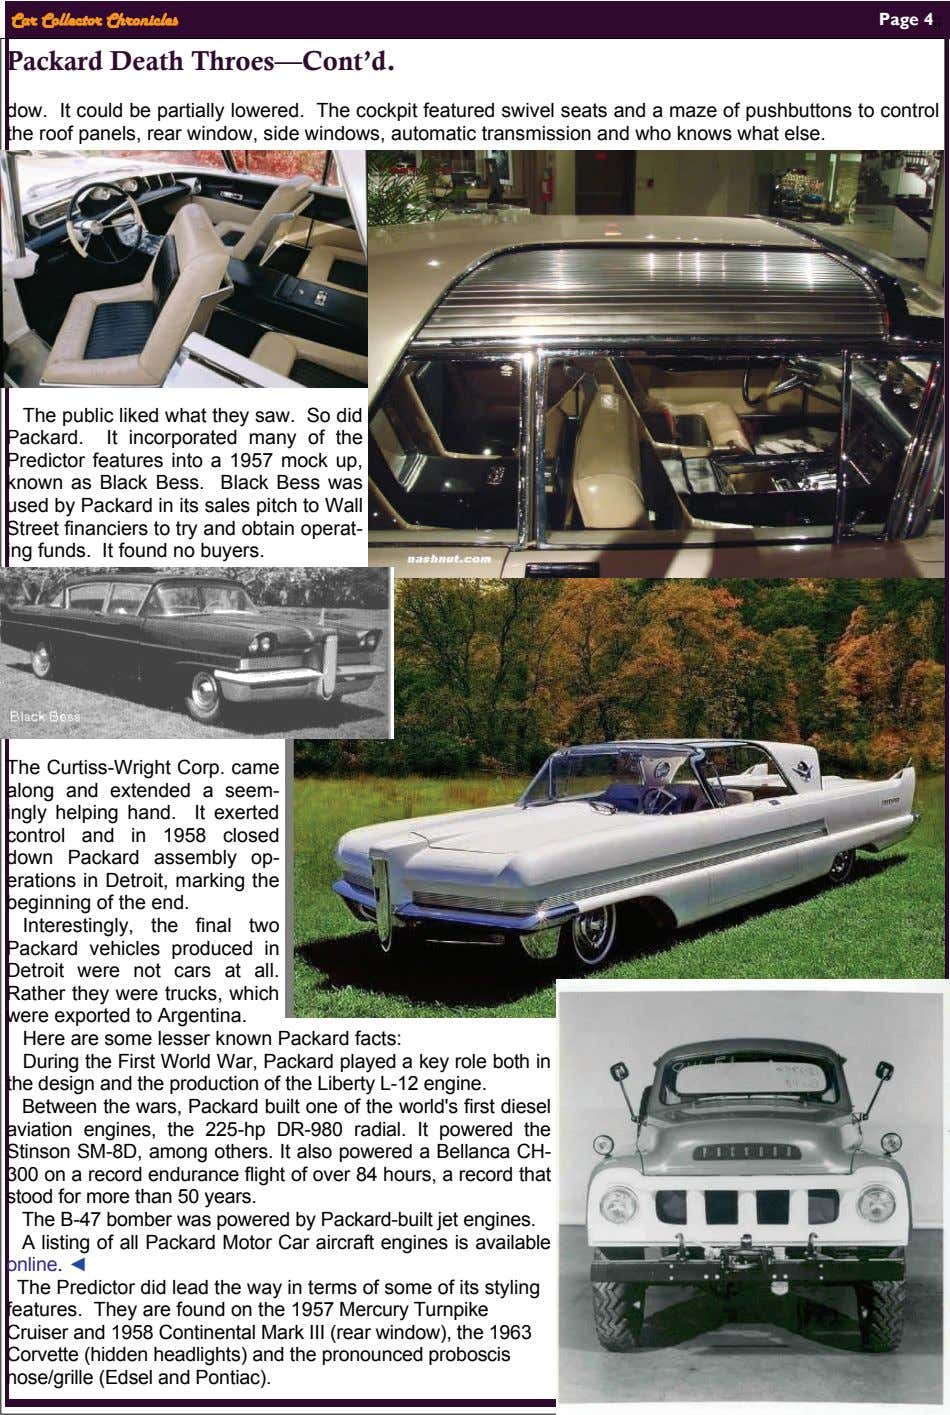 Car Collector Chronicles Page 4;; Packard Death Throes—Cont'd. dow. It could be partially lowered. The cockpit